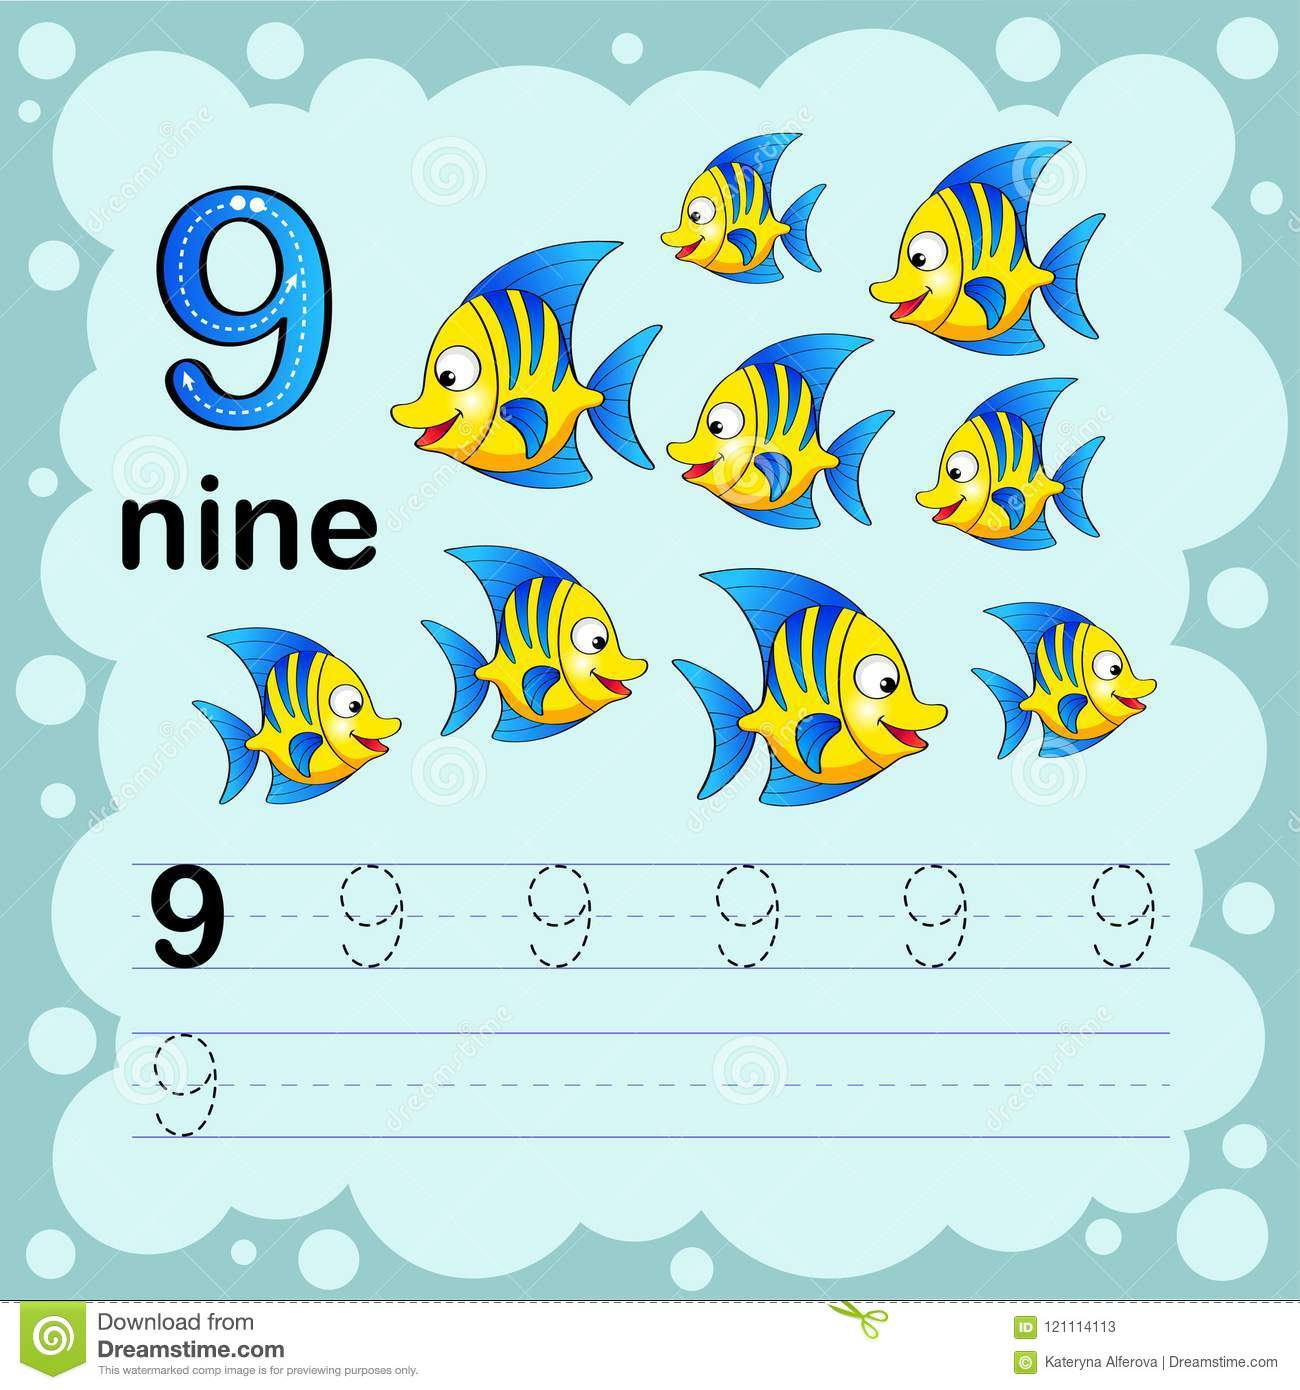 Educational Illustration To Learn How To Count And Write A Number